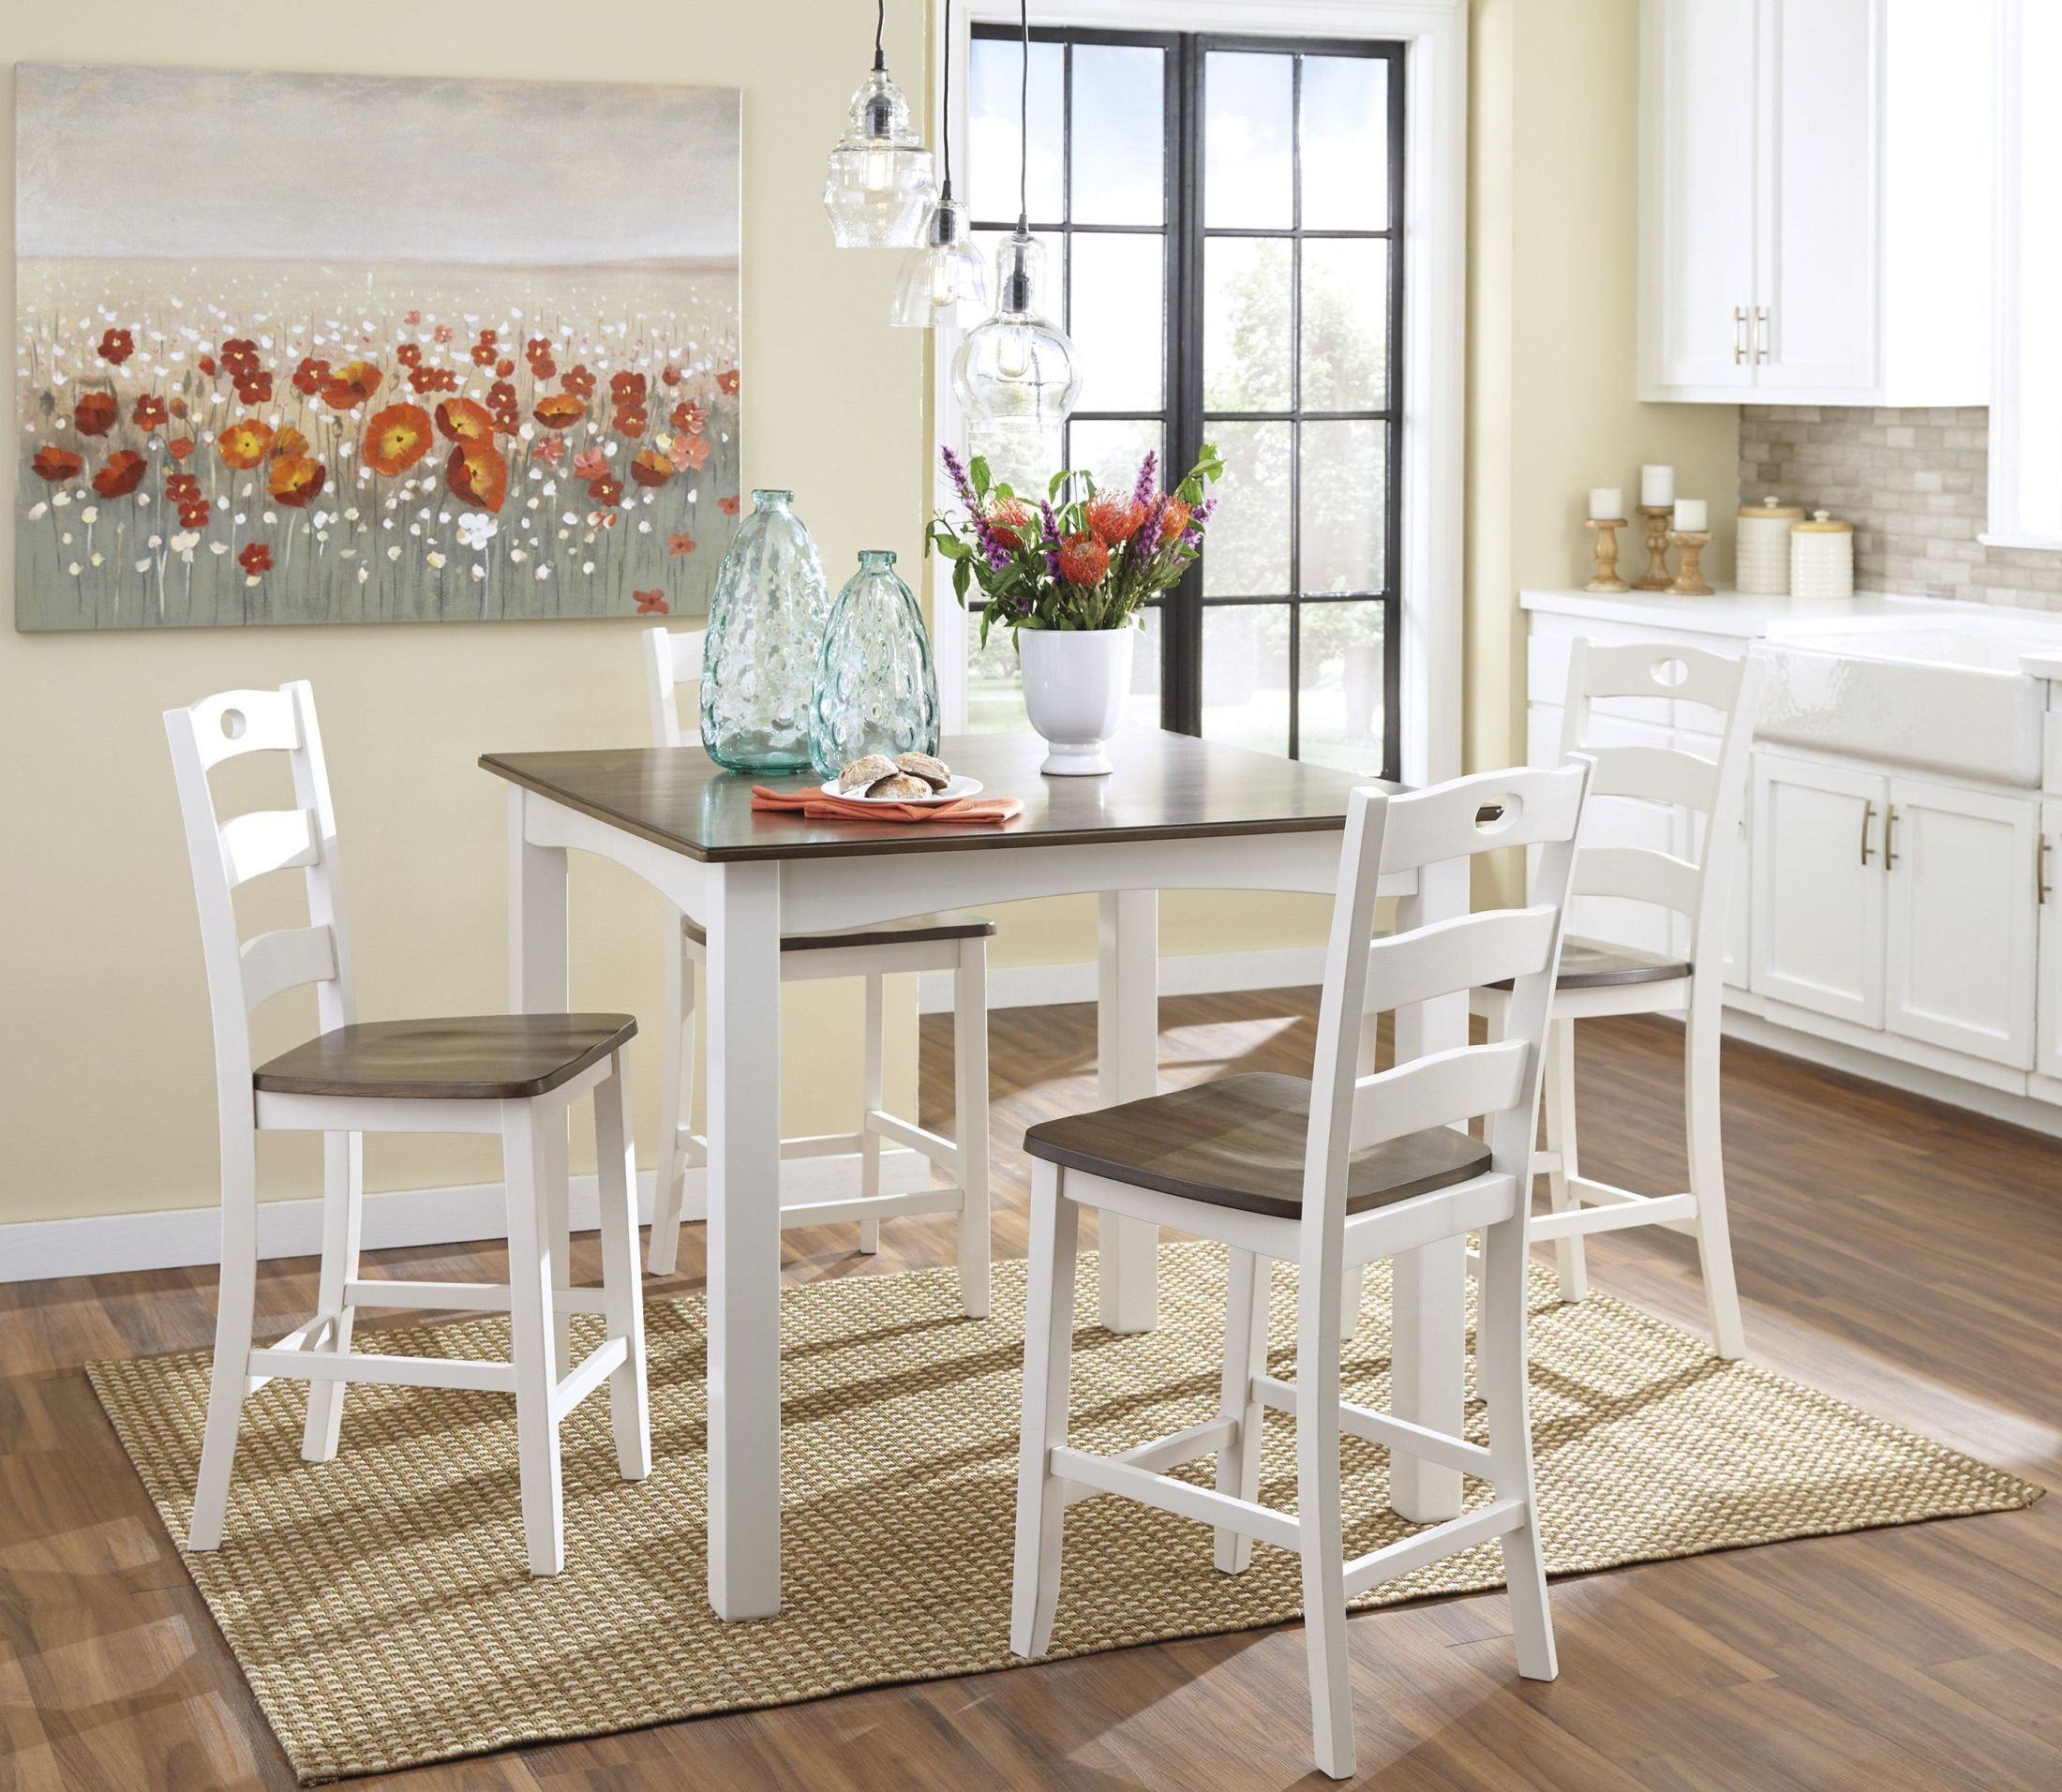 Woodanville White And Brown Square Counter Height Dining Room Set From  Ashley | Coleman Furniture